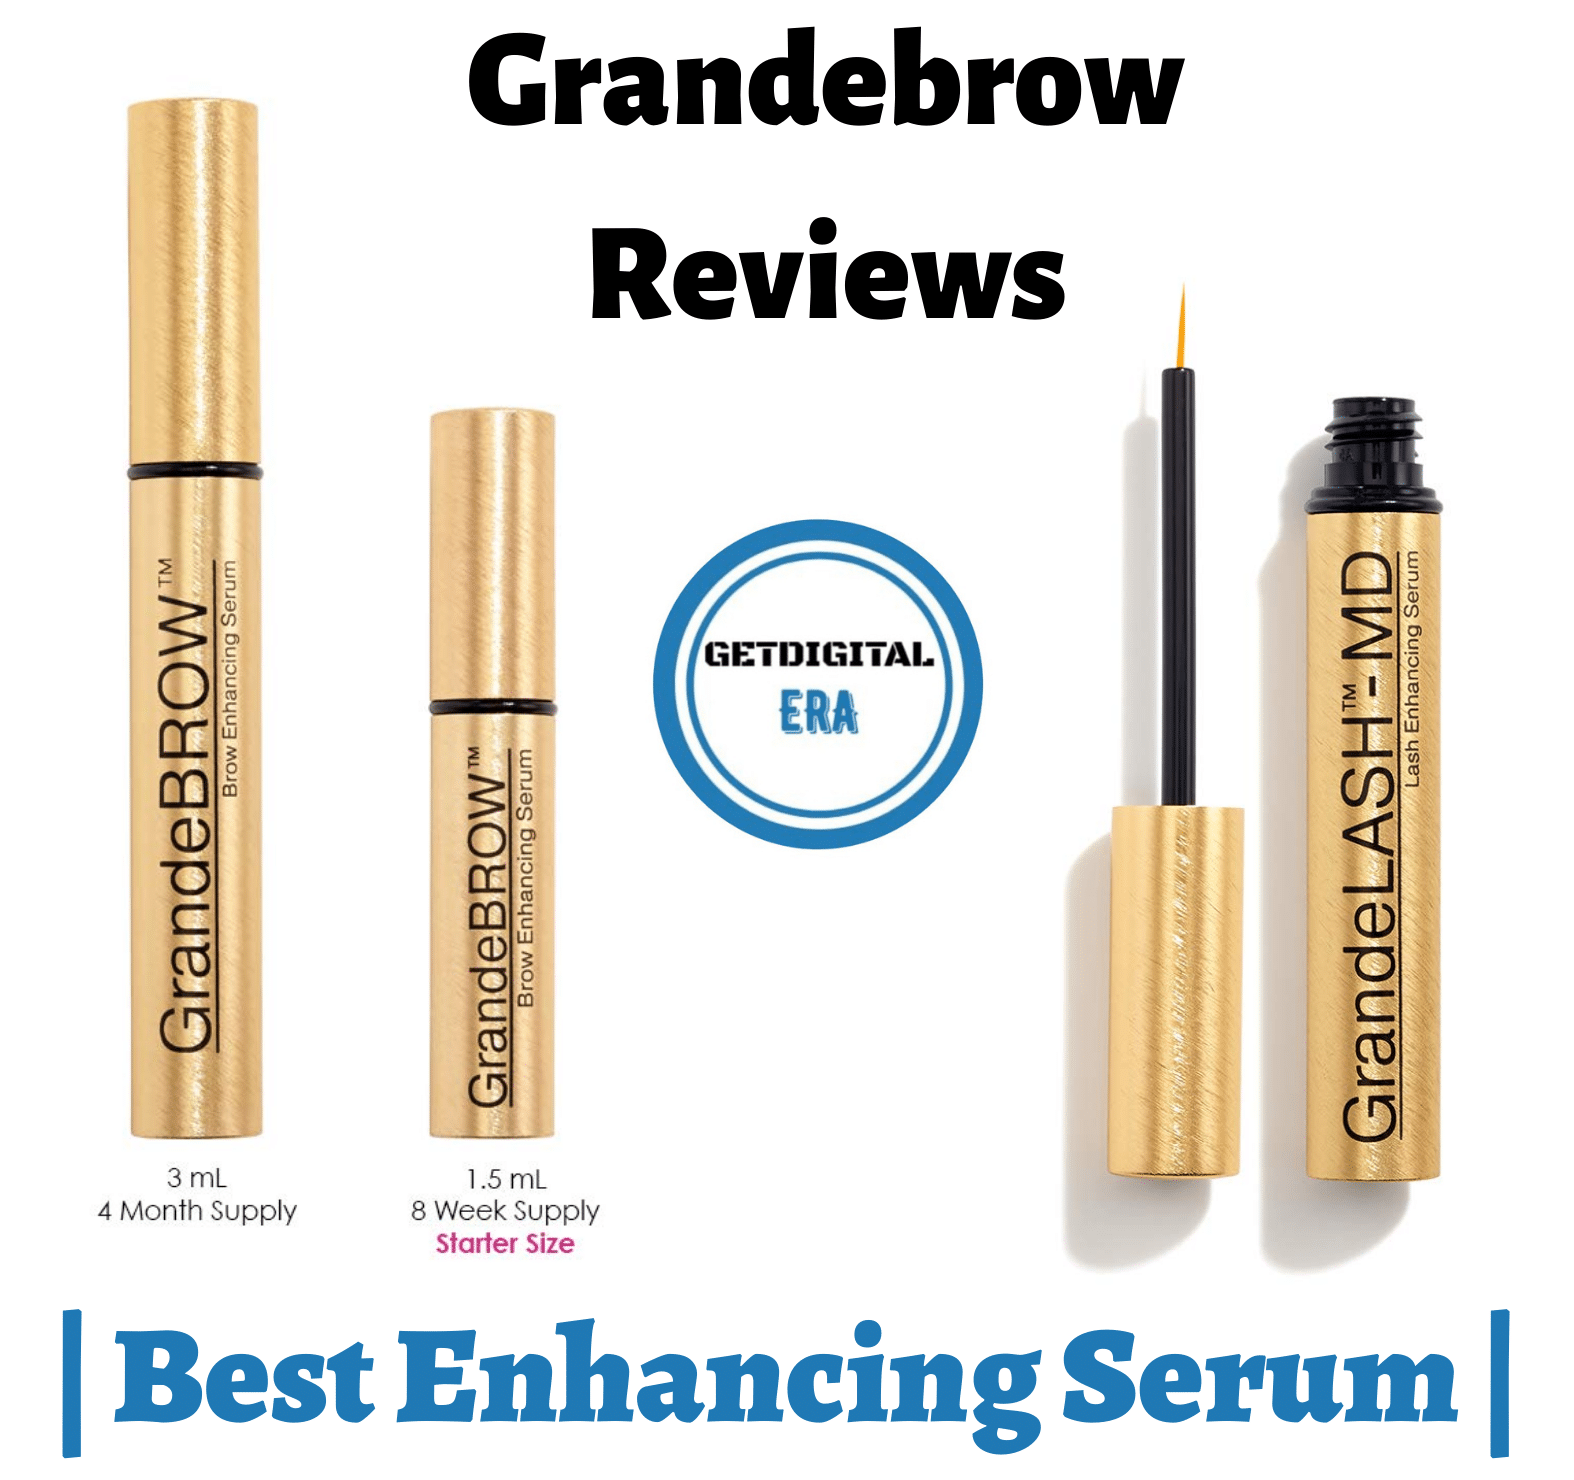 Grandebrow Reviews